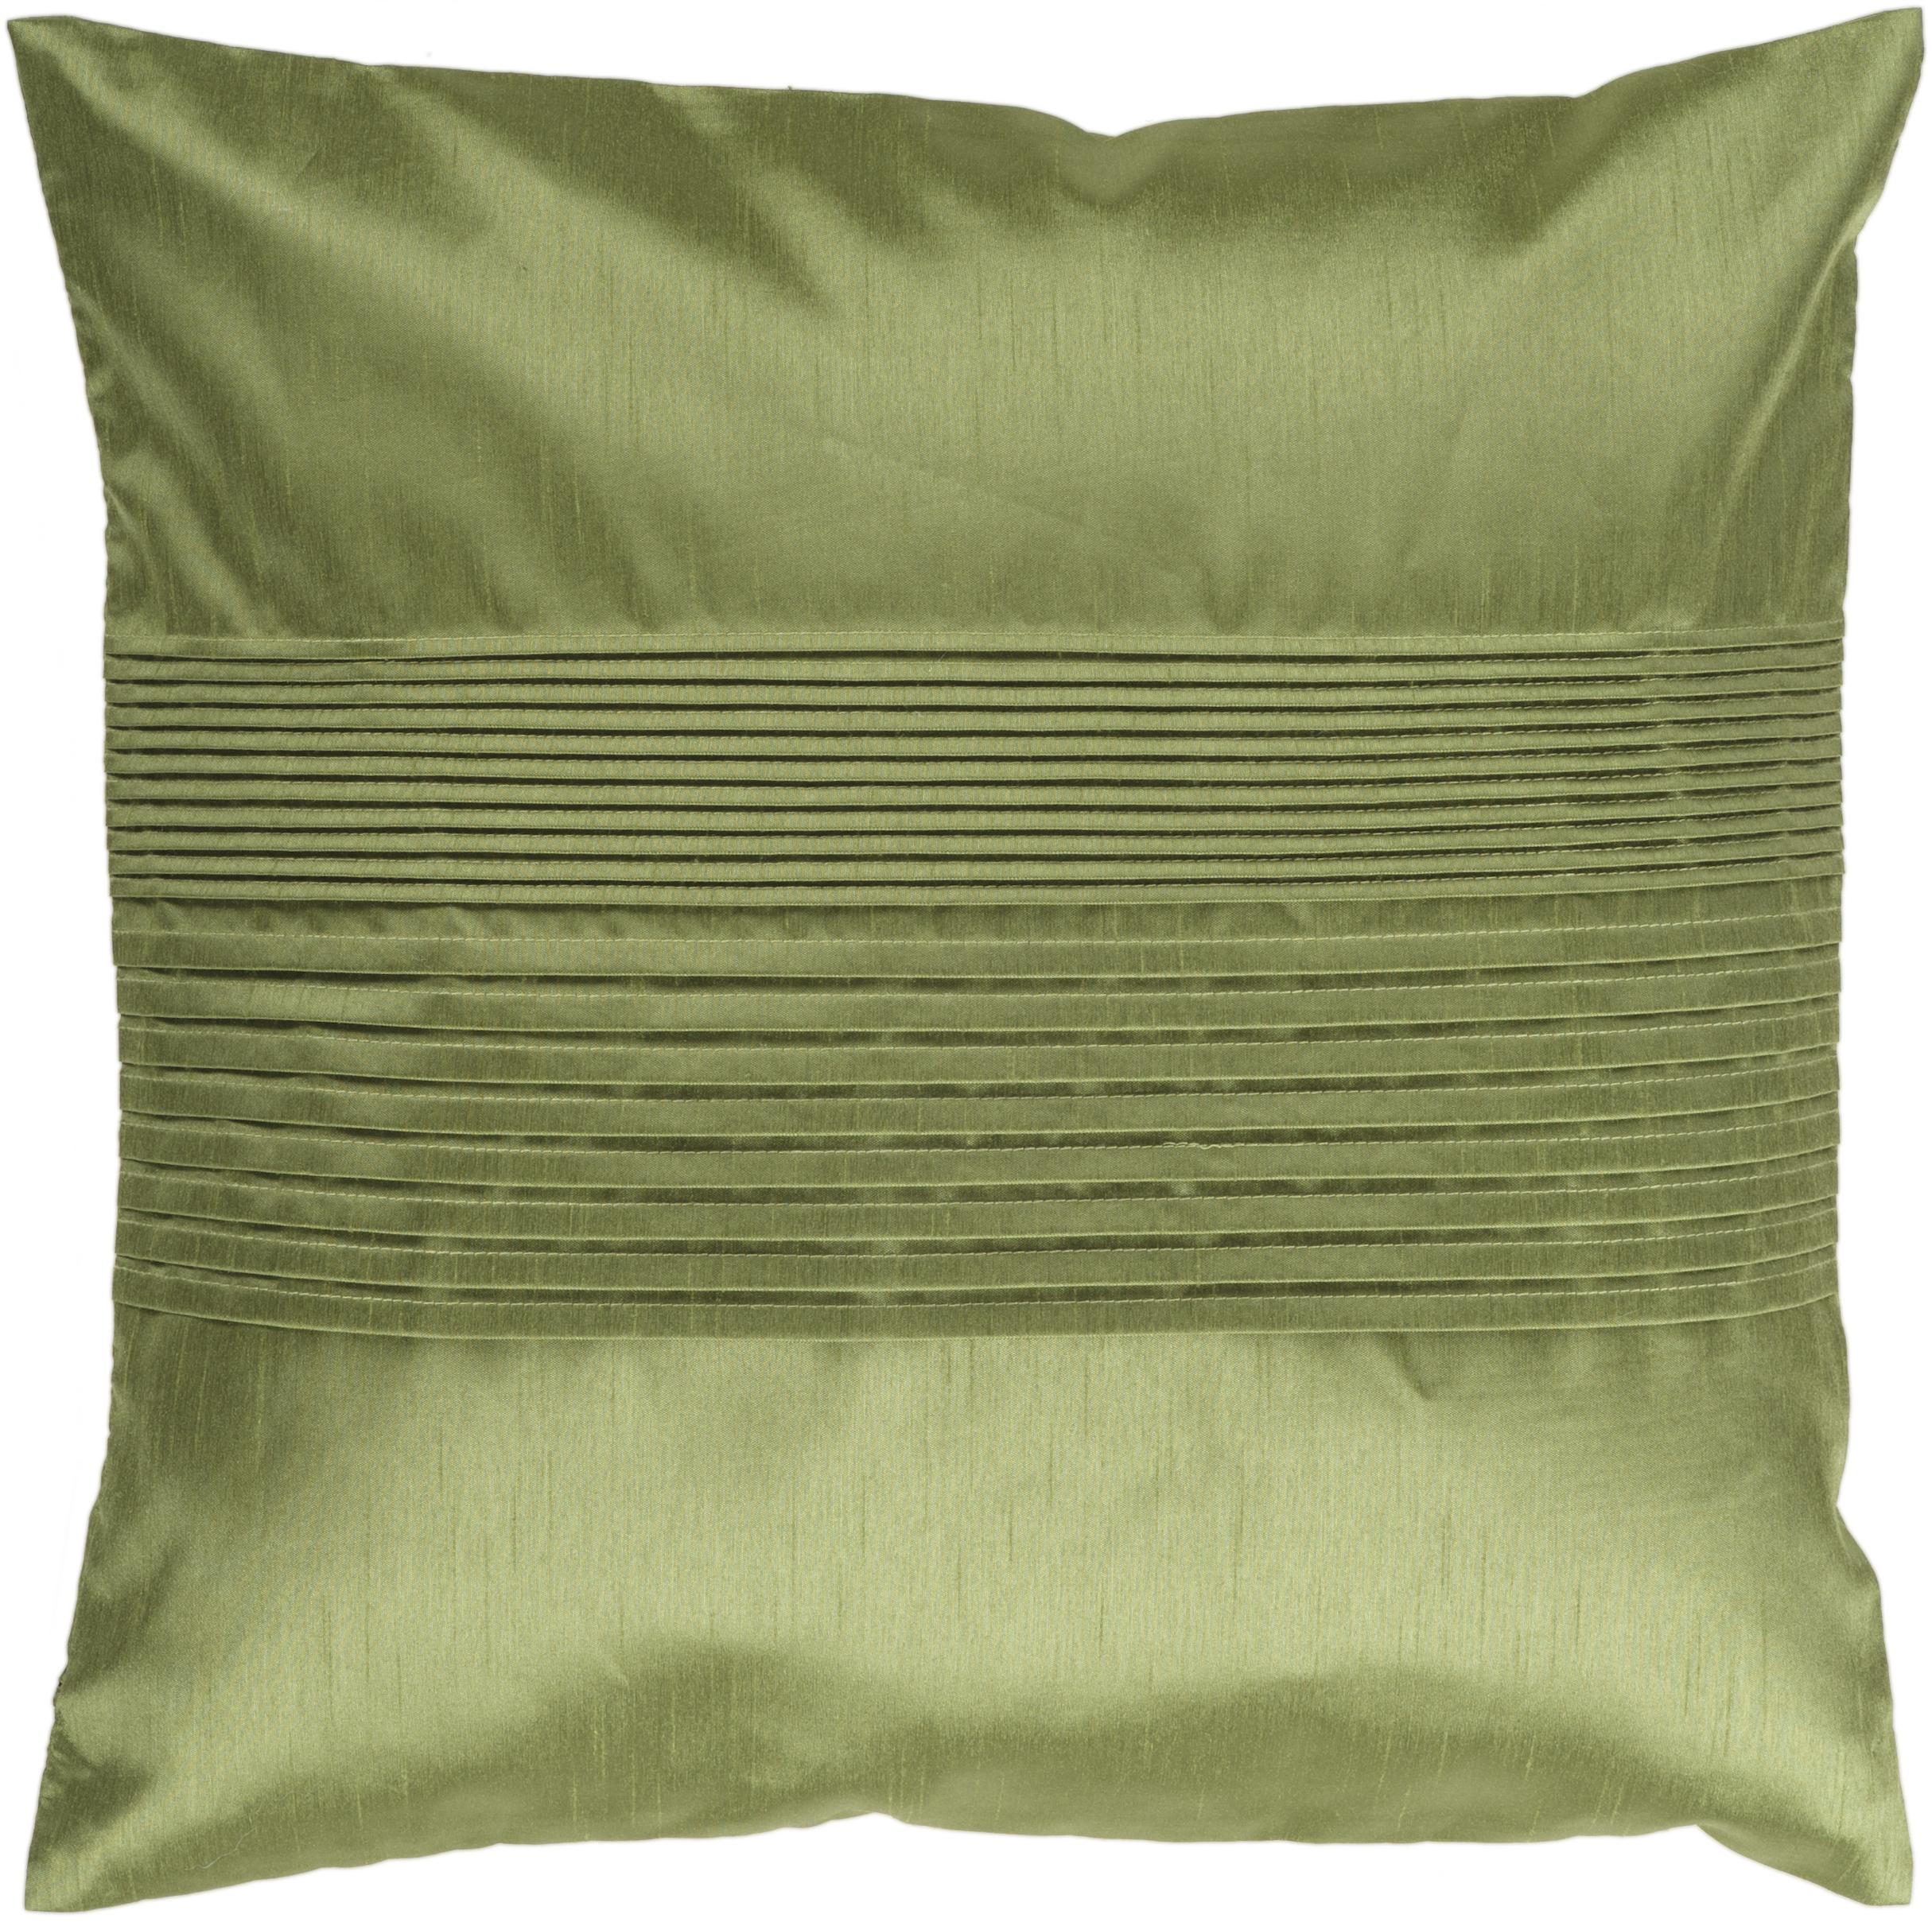 "Surya Pillows 18"" x 18"" Pillow - Item Number: HH013-1818P"